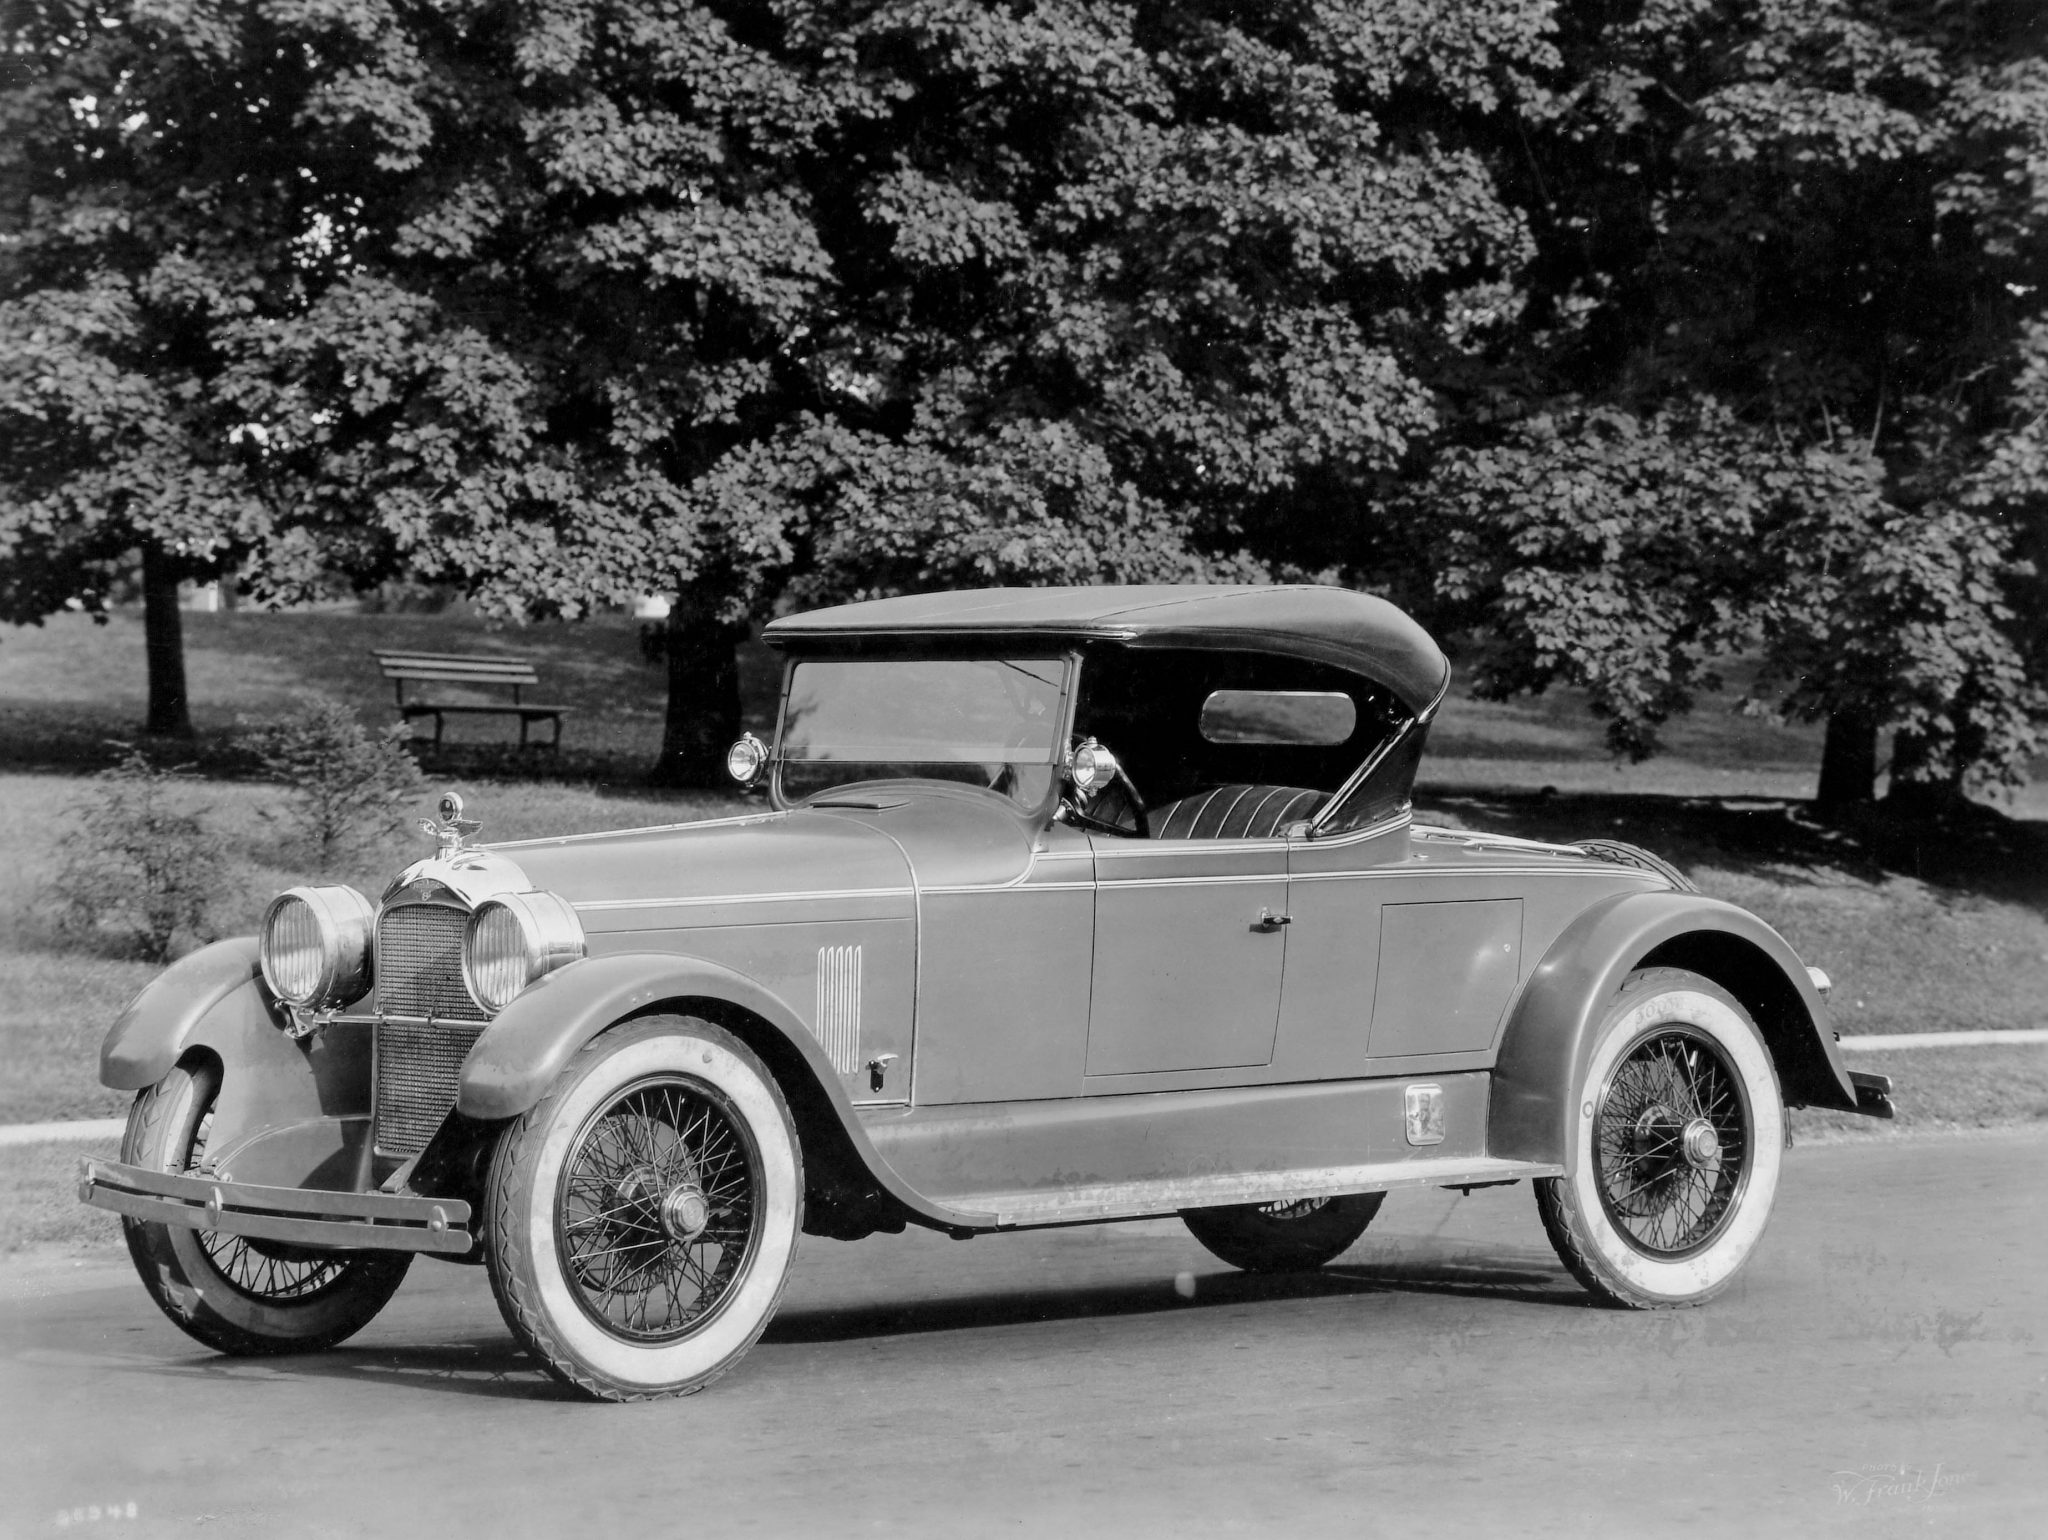 Another superb example of Duesenberg Model A styling, a sporty 1923 roadster with coachwork by Rubay. Once again note the small, swiveling sidelights attached to the windshield frame. The car is also equipped with a golf bag door on the driver's side.